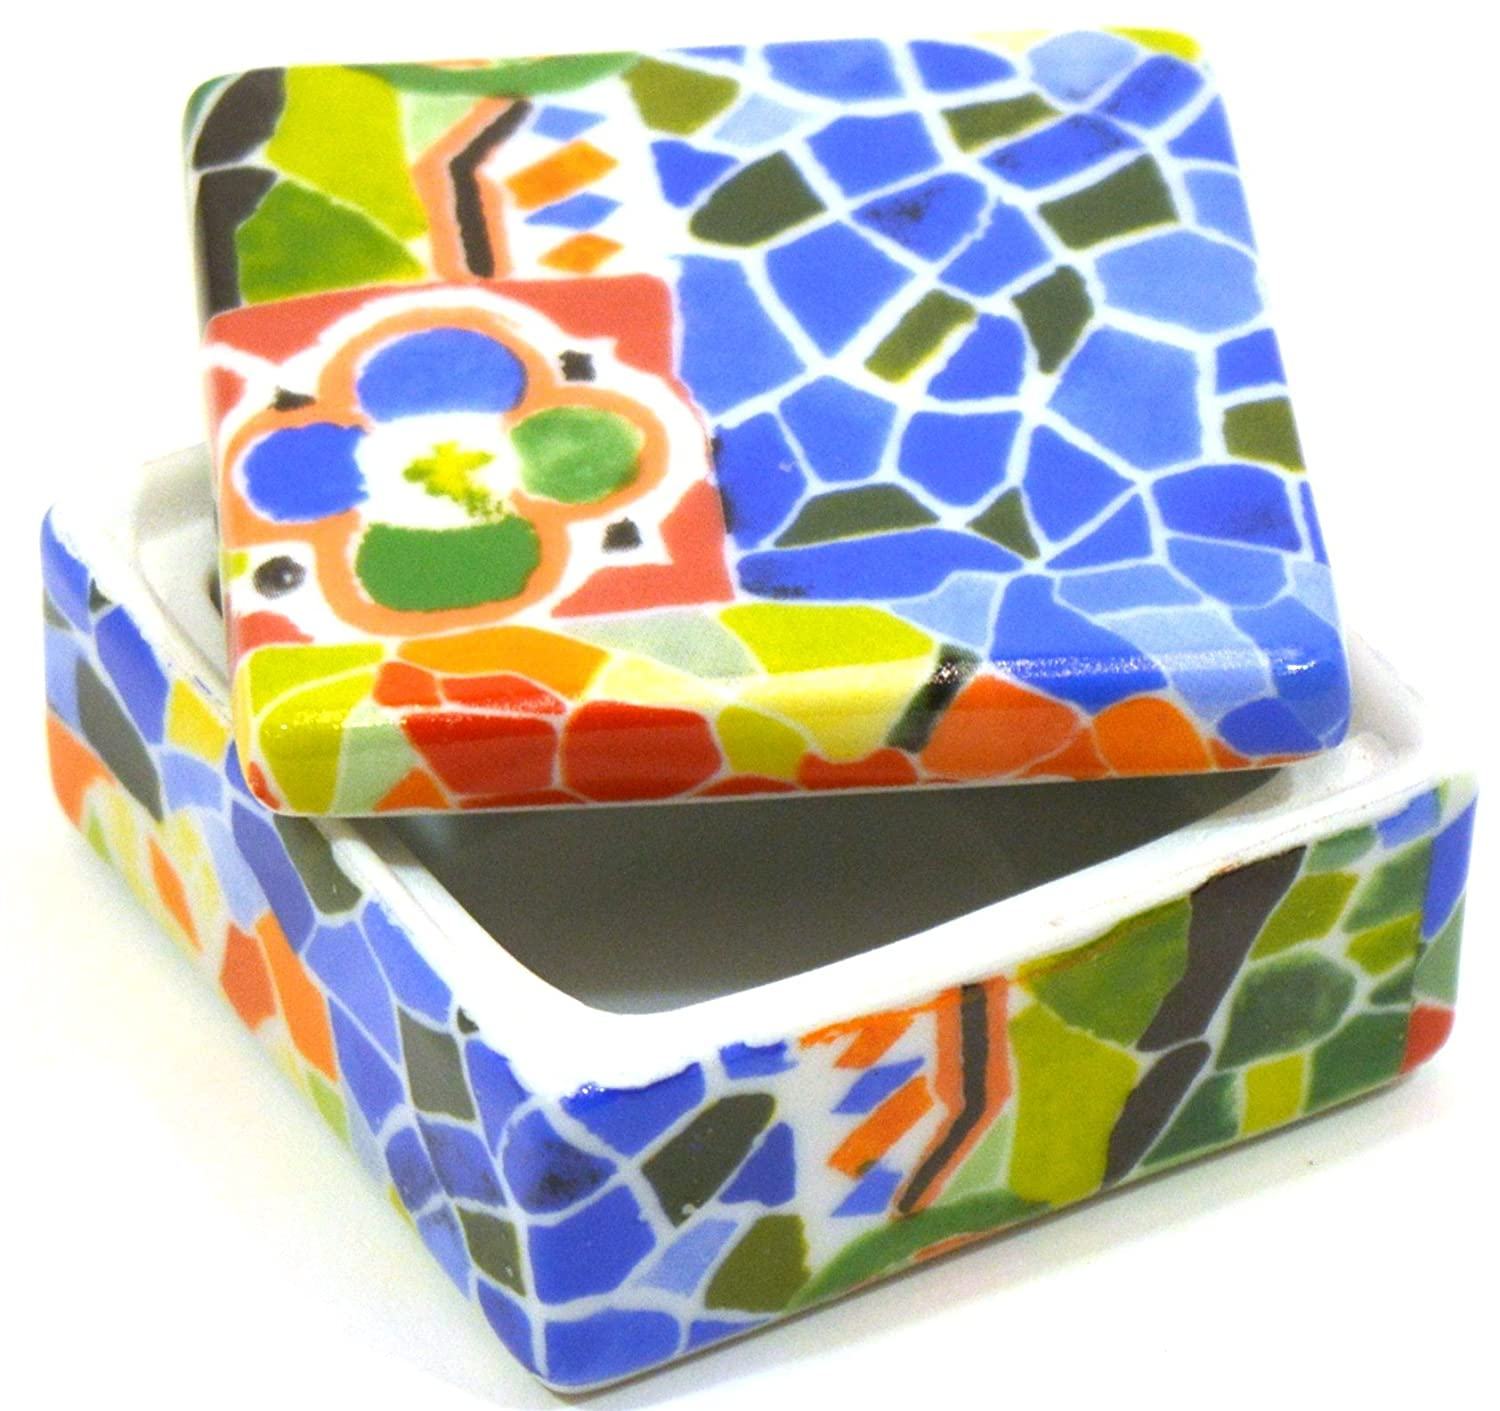 Amazon.com: ART ESCUDELLERS Porcelain SQUARED JEWEL BOX decorated in TRENCADIS Gaudí style. (Colour AURORA). 2.36 x 2.36: Home & Kitchen